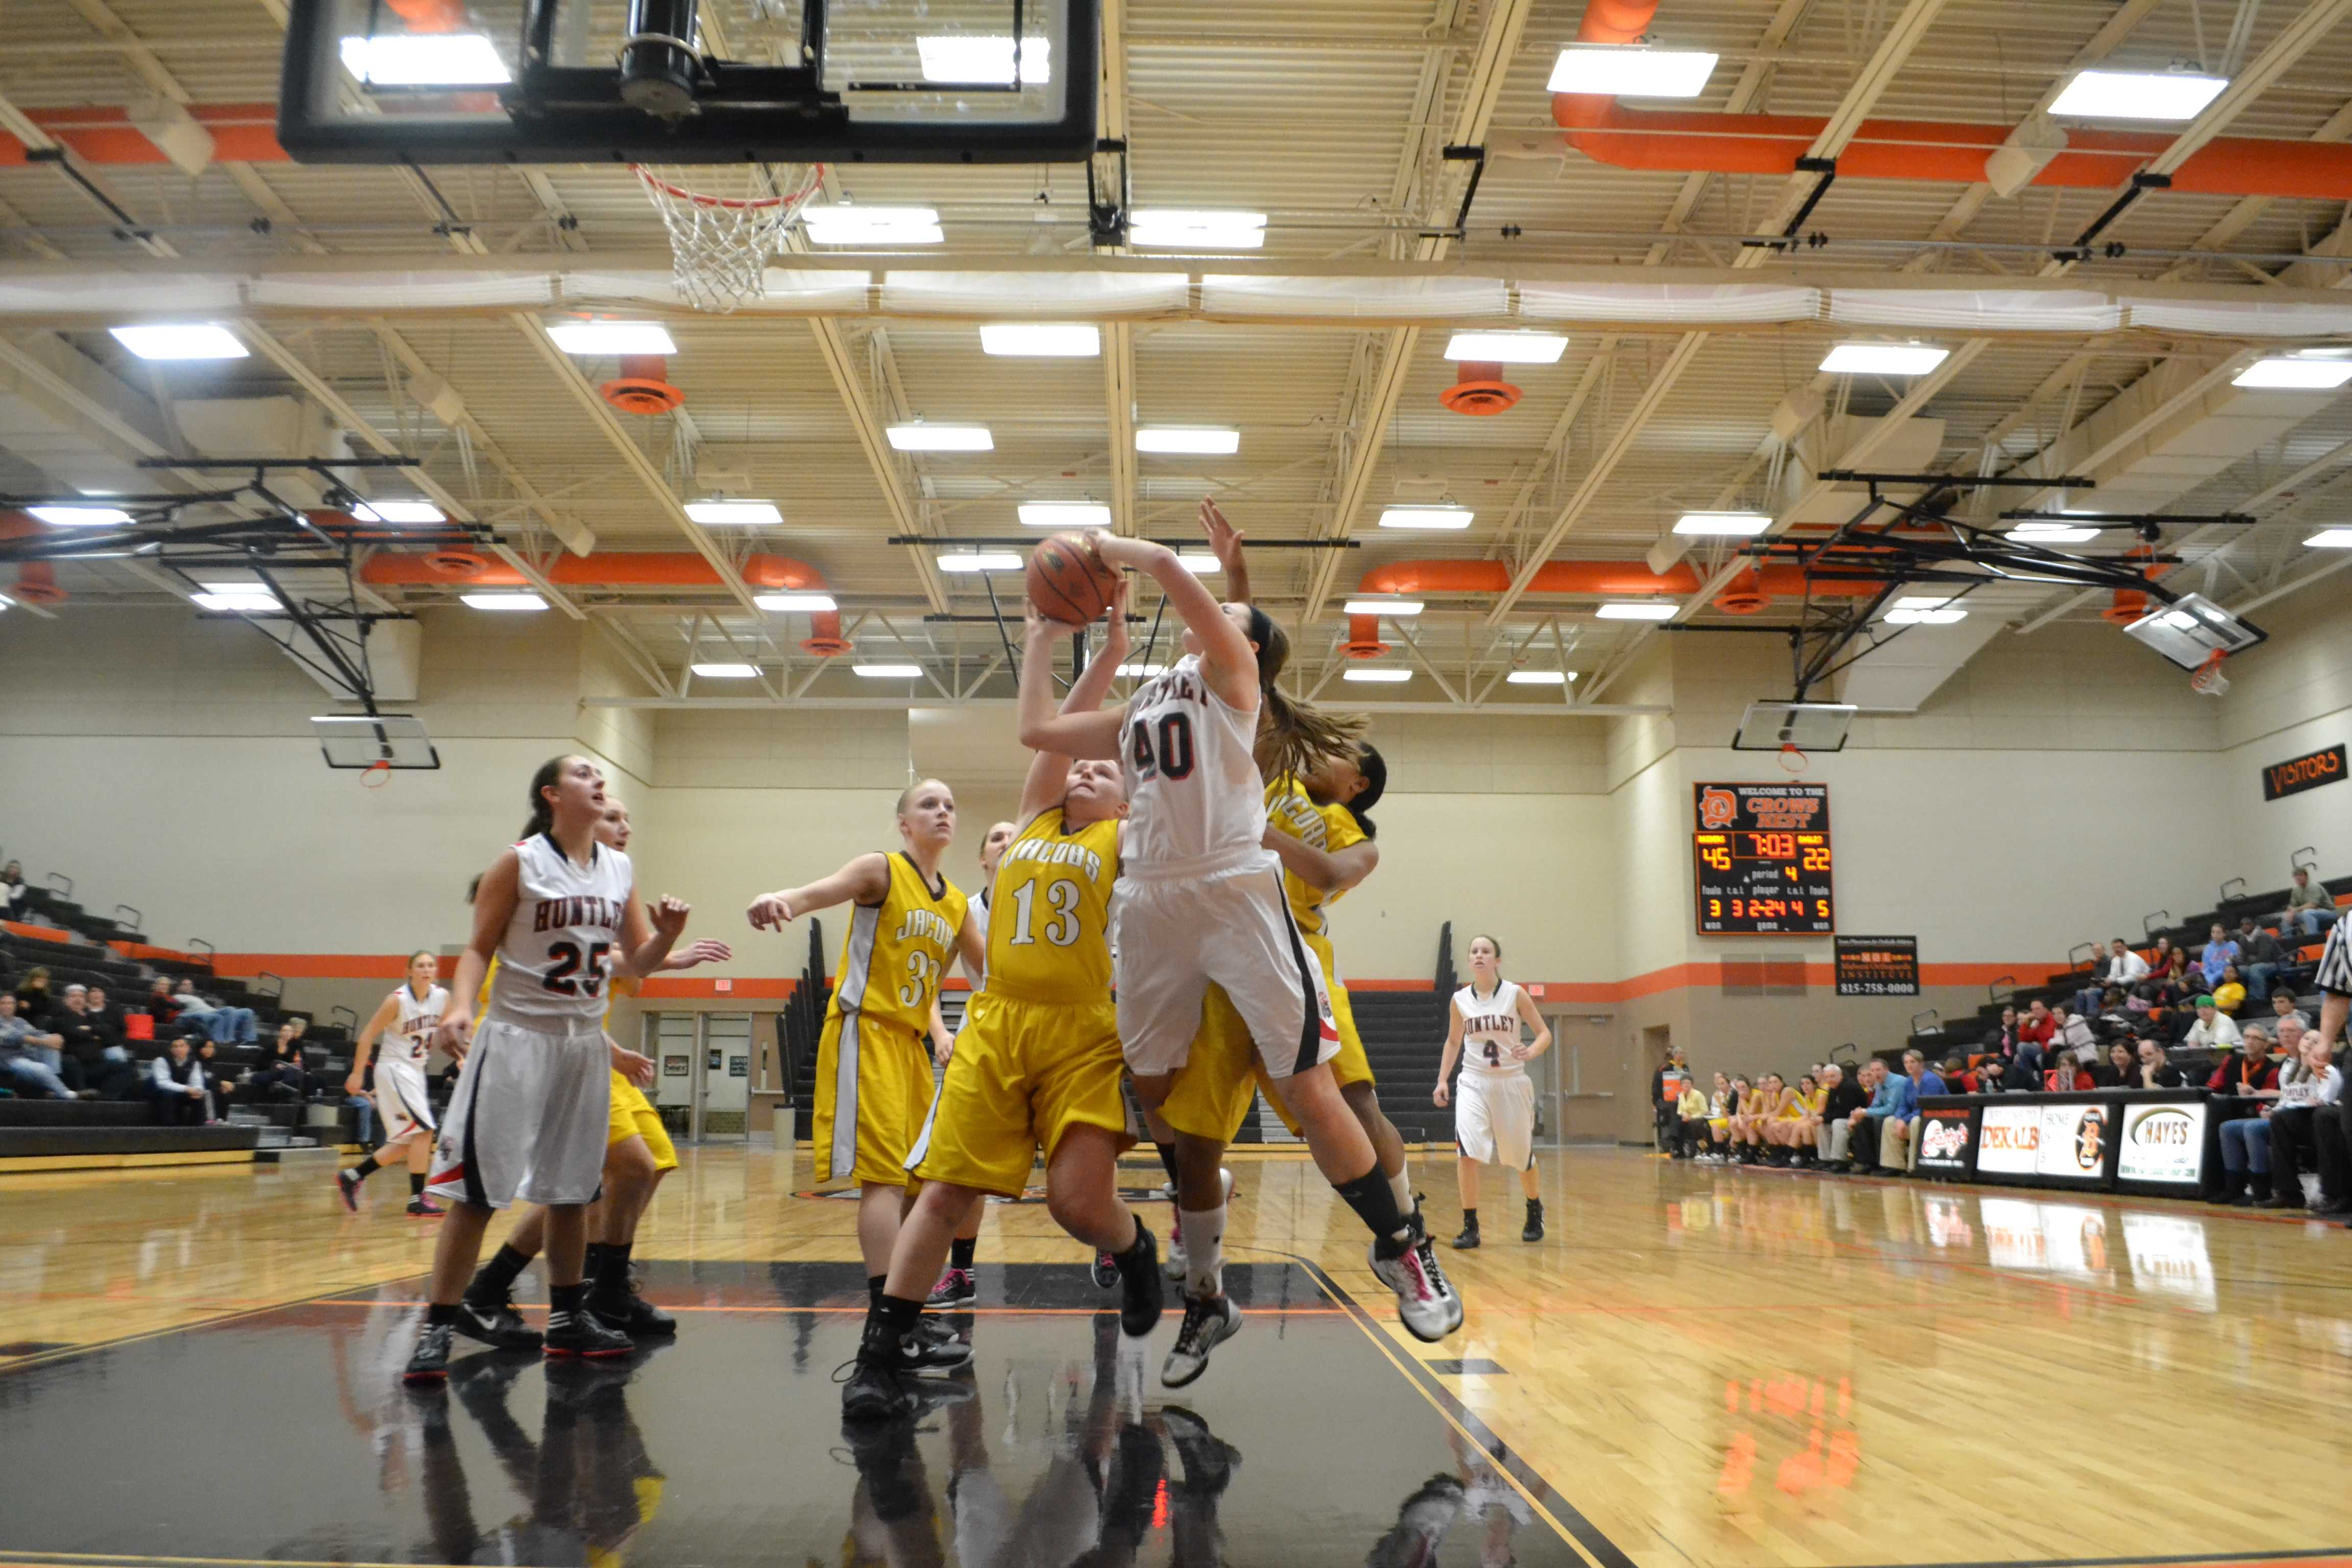 Huntley Red Raiders player attempts to score against the Jacobs Golden Eagles (M. Krebs).